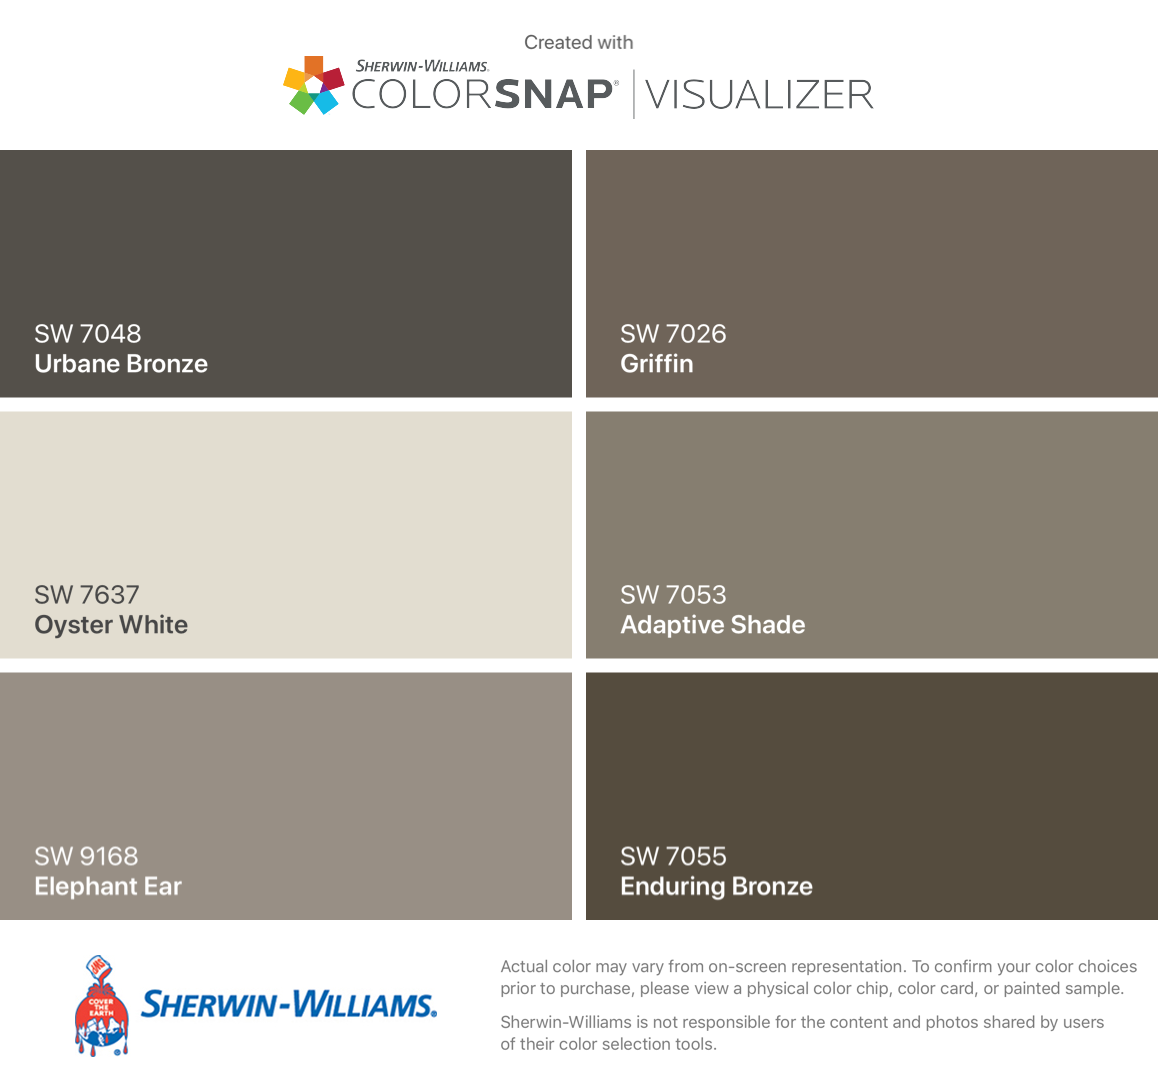 I Found These Colors With Colorsnap Visualizer For Iphone By Sherwin Williams Urbane Bronze Sw 7048 Oyster White Sw 763 Oak Trim Honey Oak Trim Honey Oak